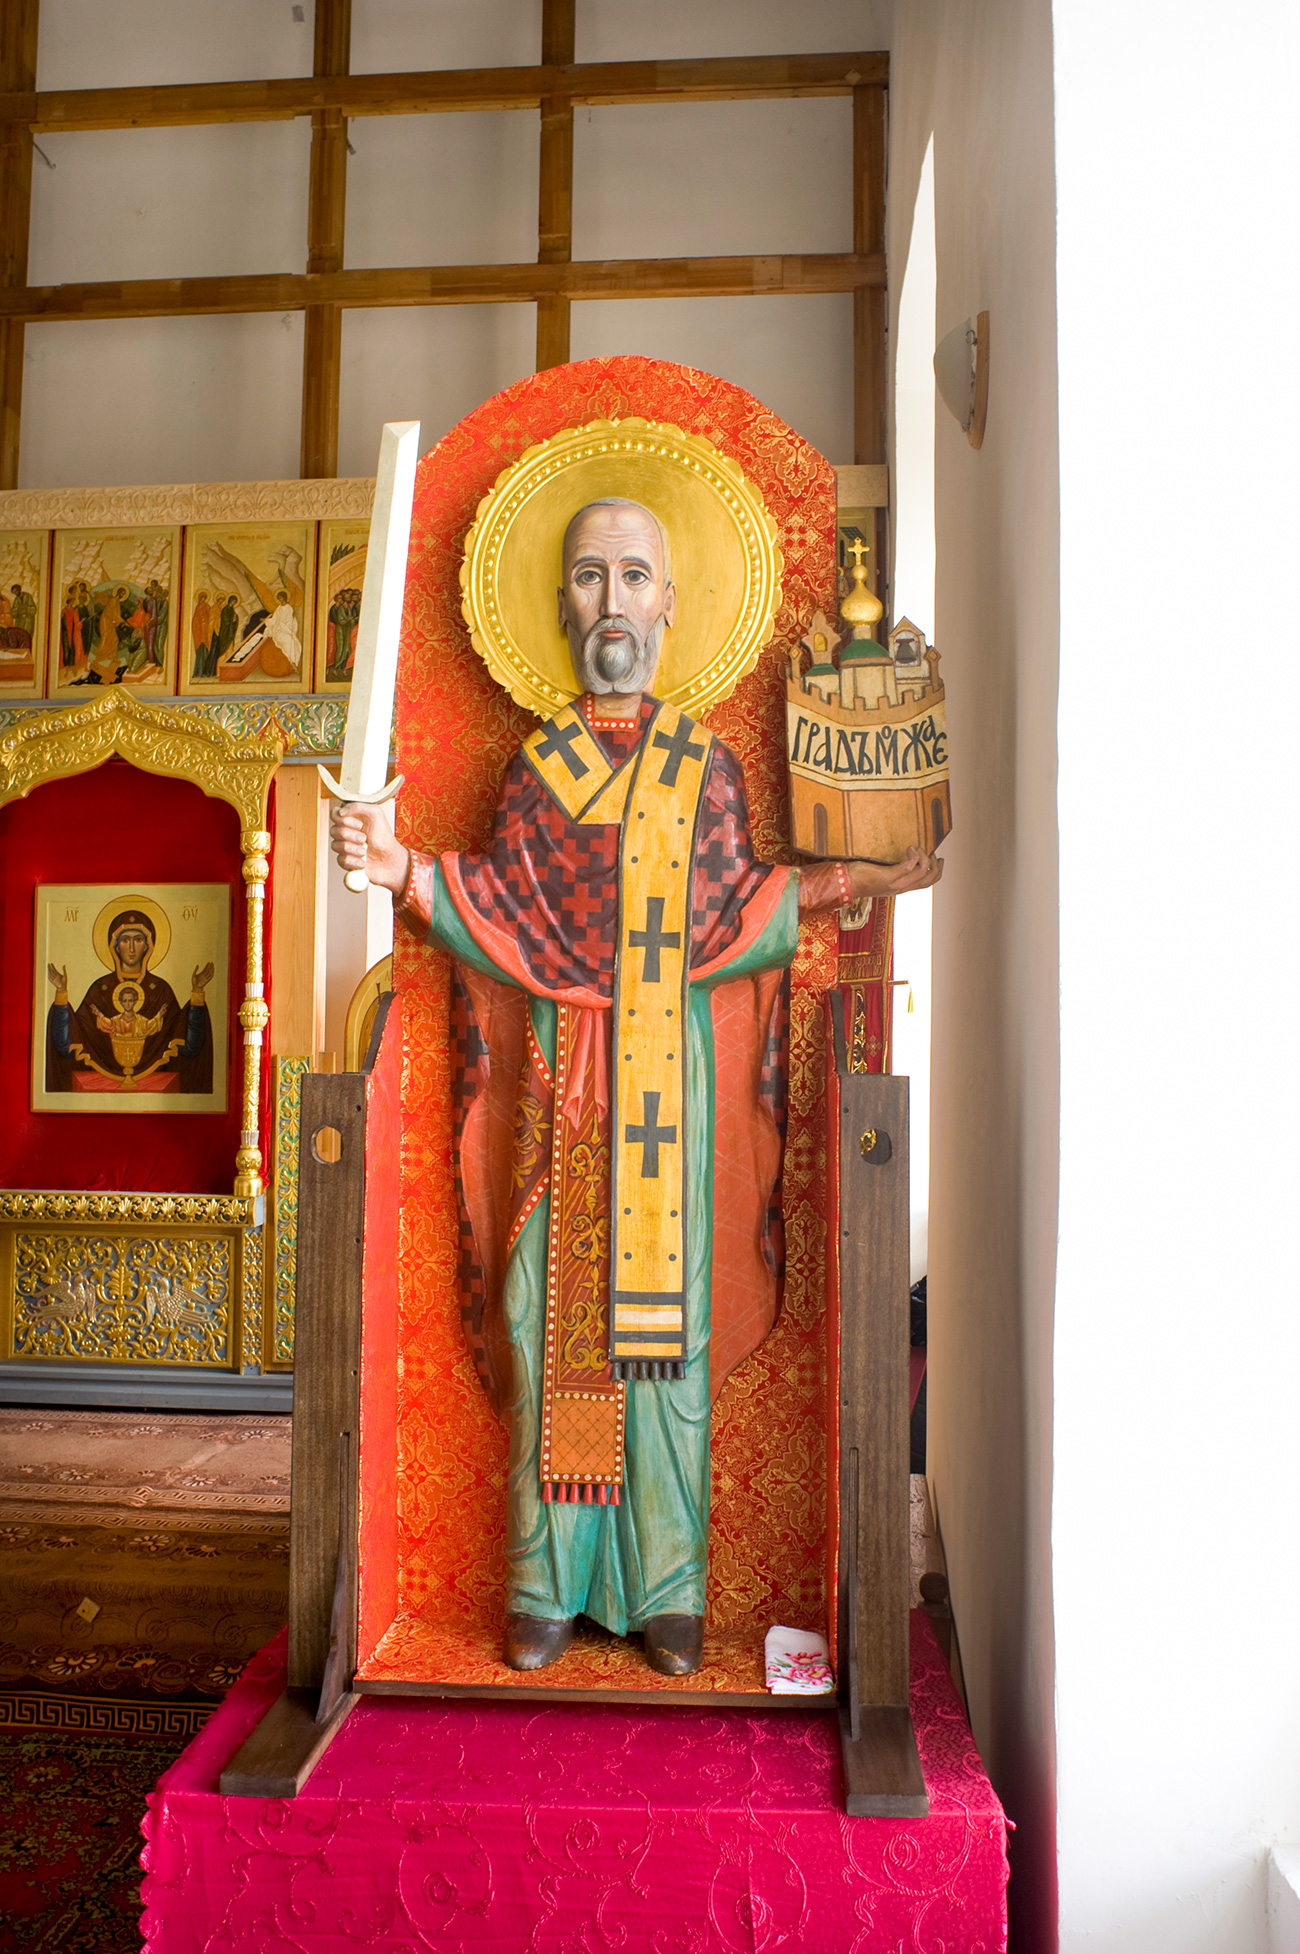 Cathedral of St. Nicholas. Interior with wooden statue of St. Nicholas of Mozhaisk. Aug. 21, 2012. / Photo: William Brumfield